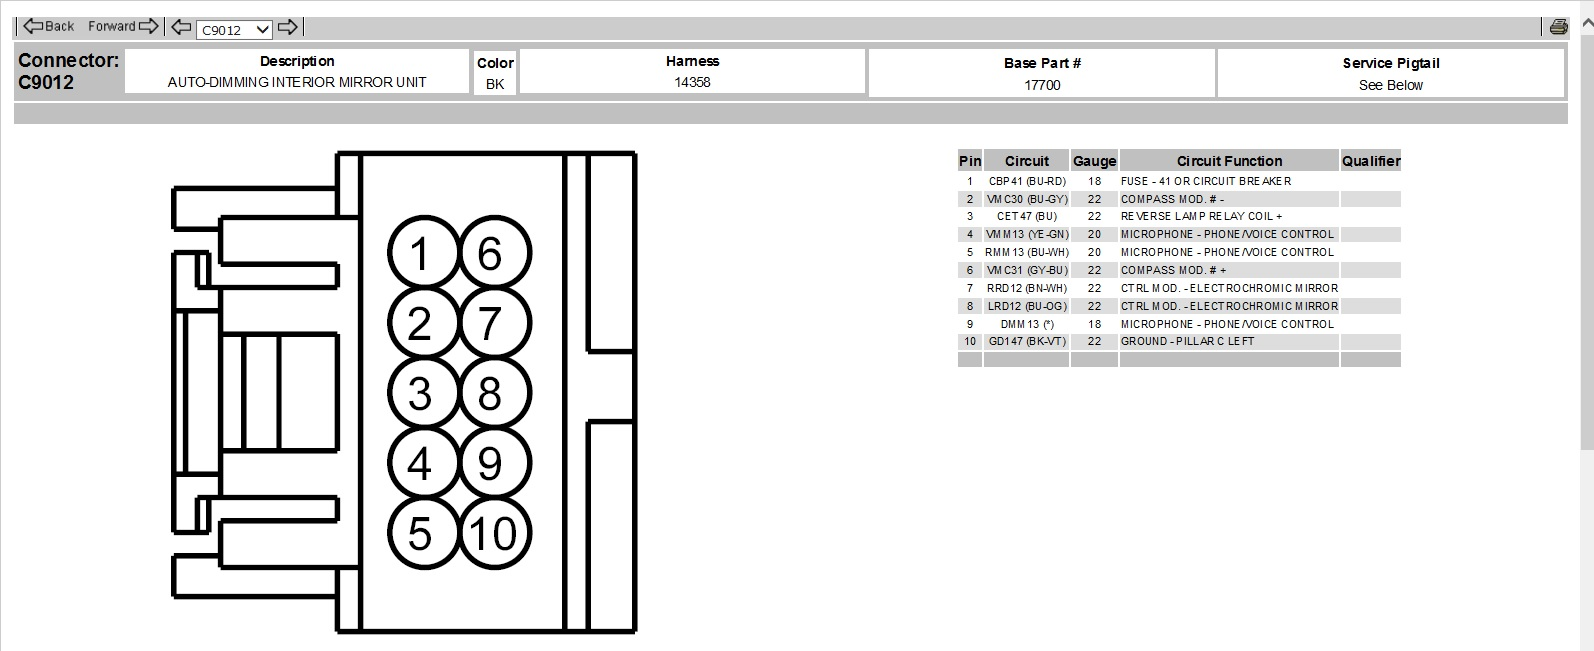 wiring diagram for 2009 ford f 150 rear view mirror